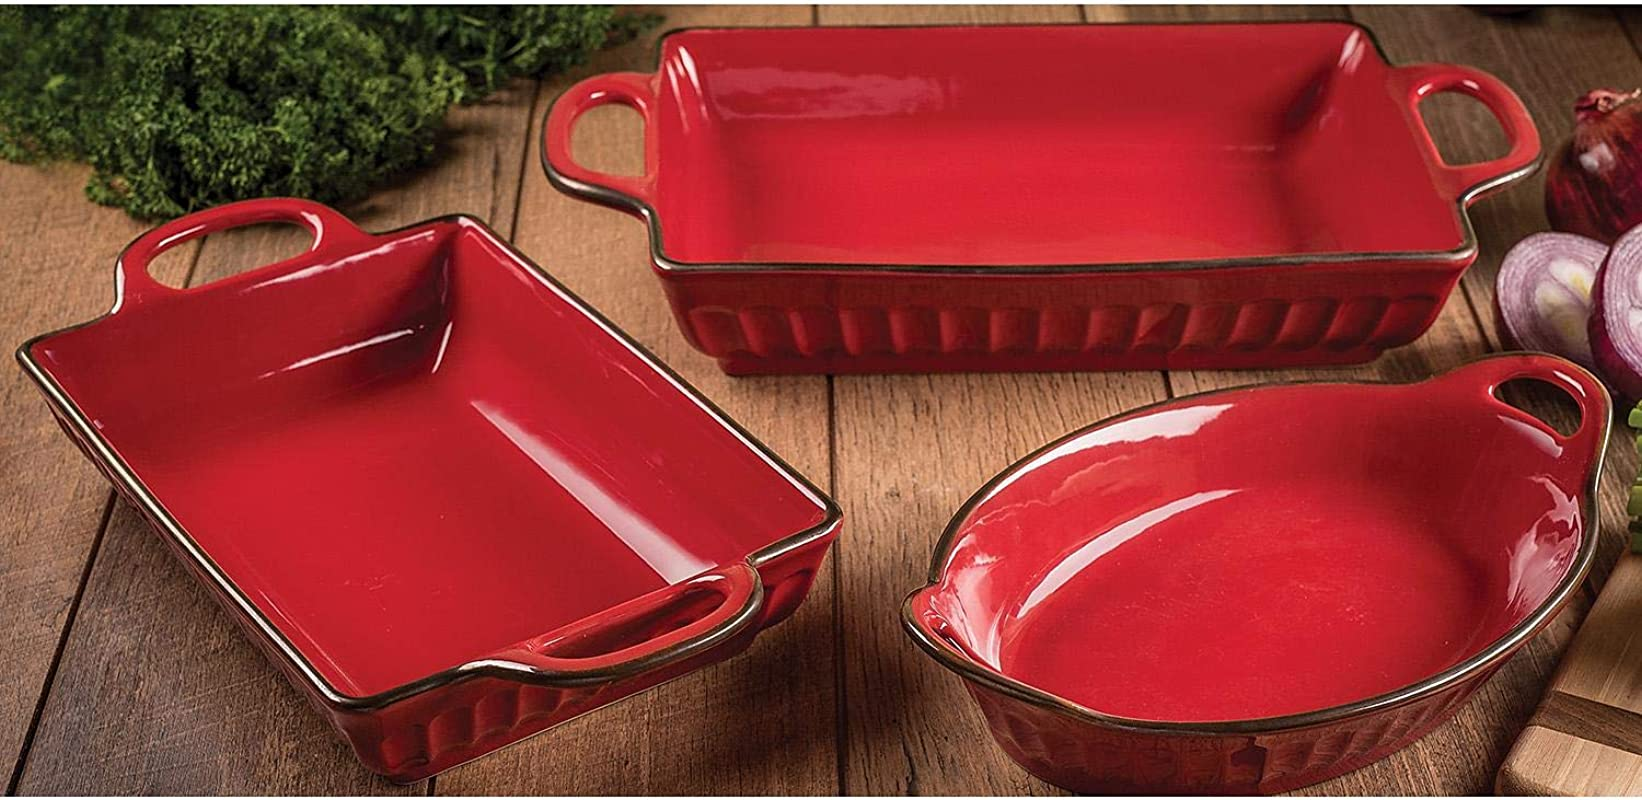 Oven To Table Premium Fluted Bakeware Set Oven Microwave Dishwasher And Freezer Safe Red